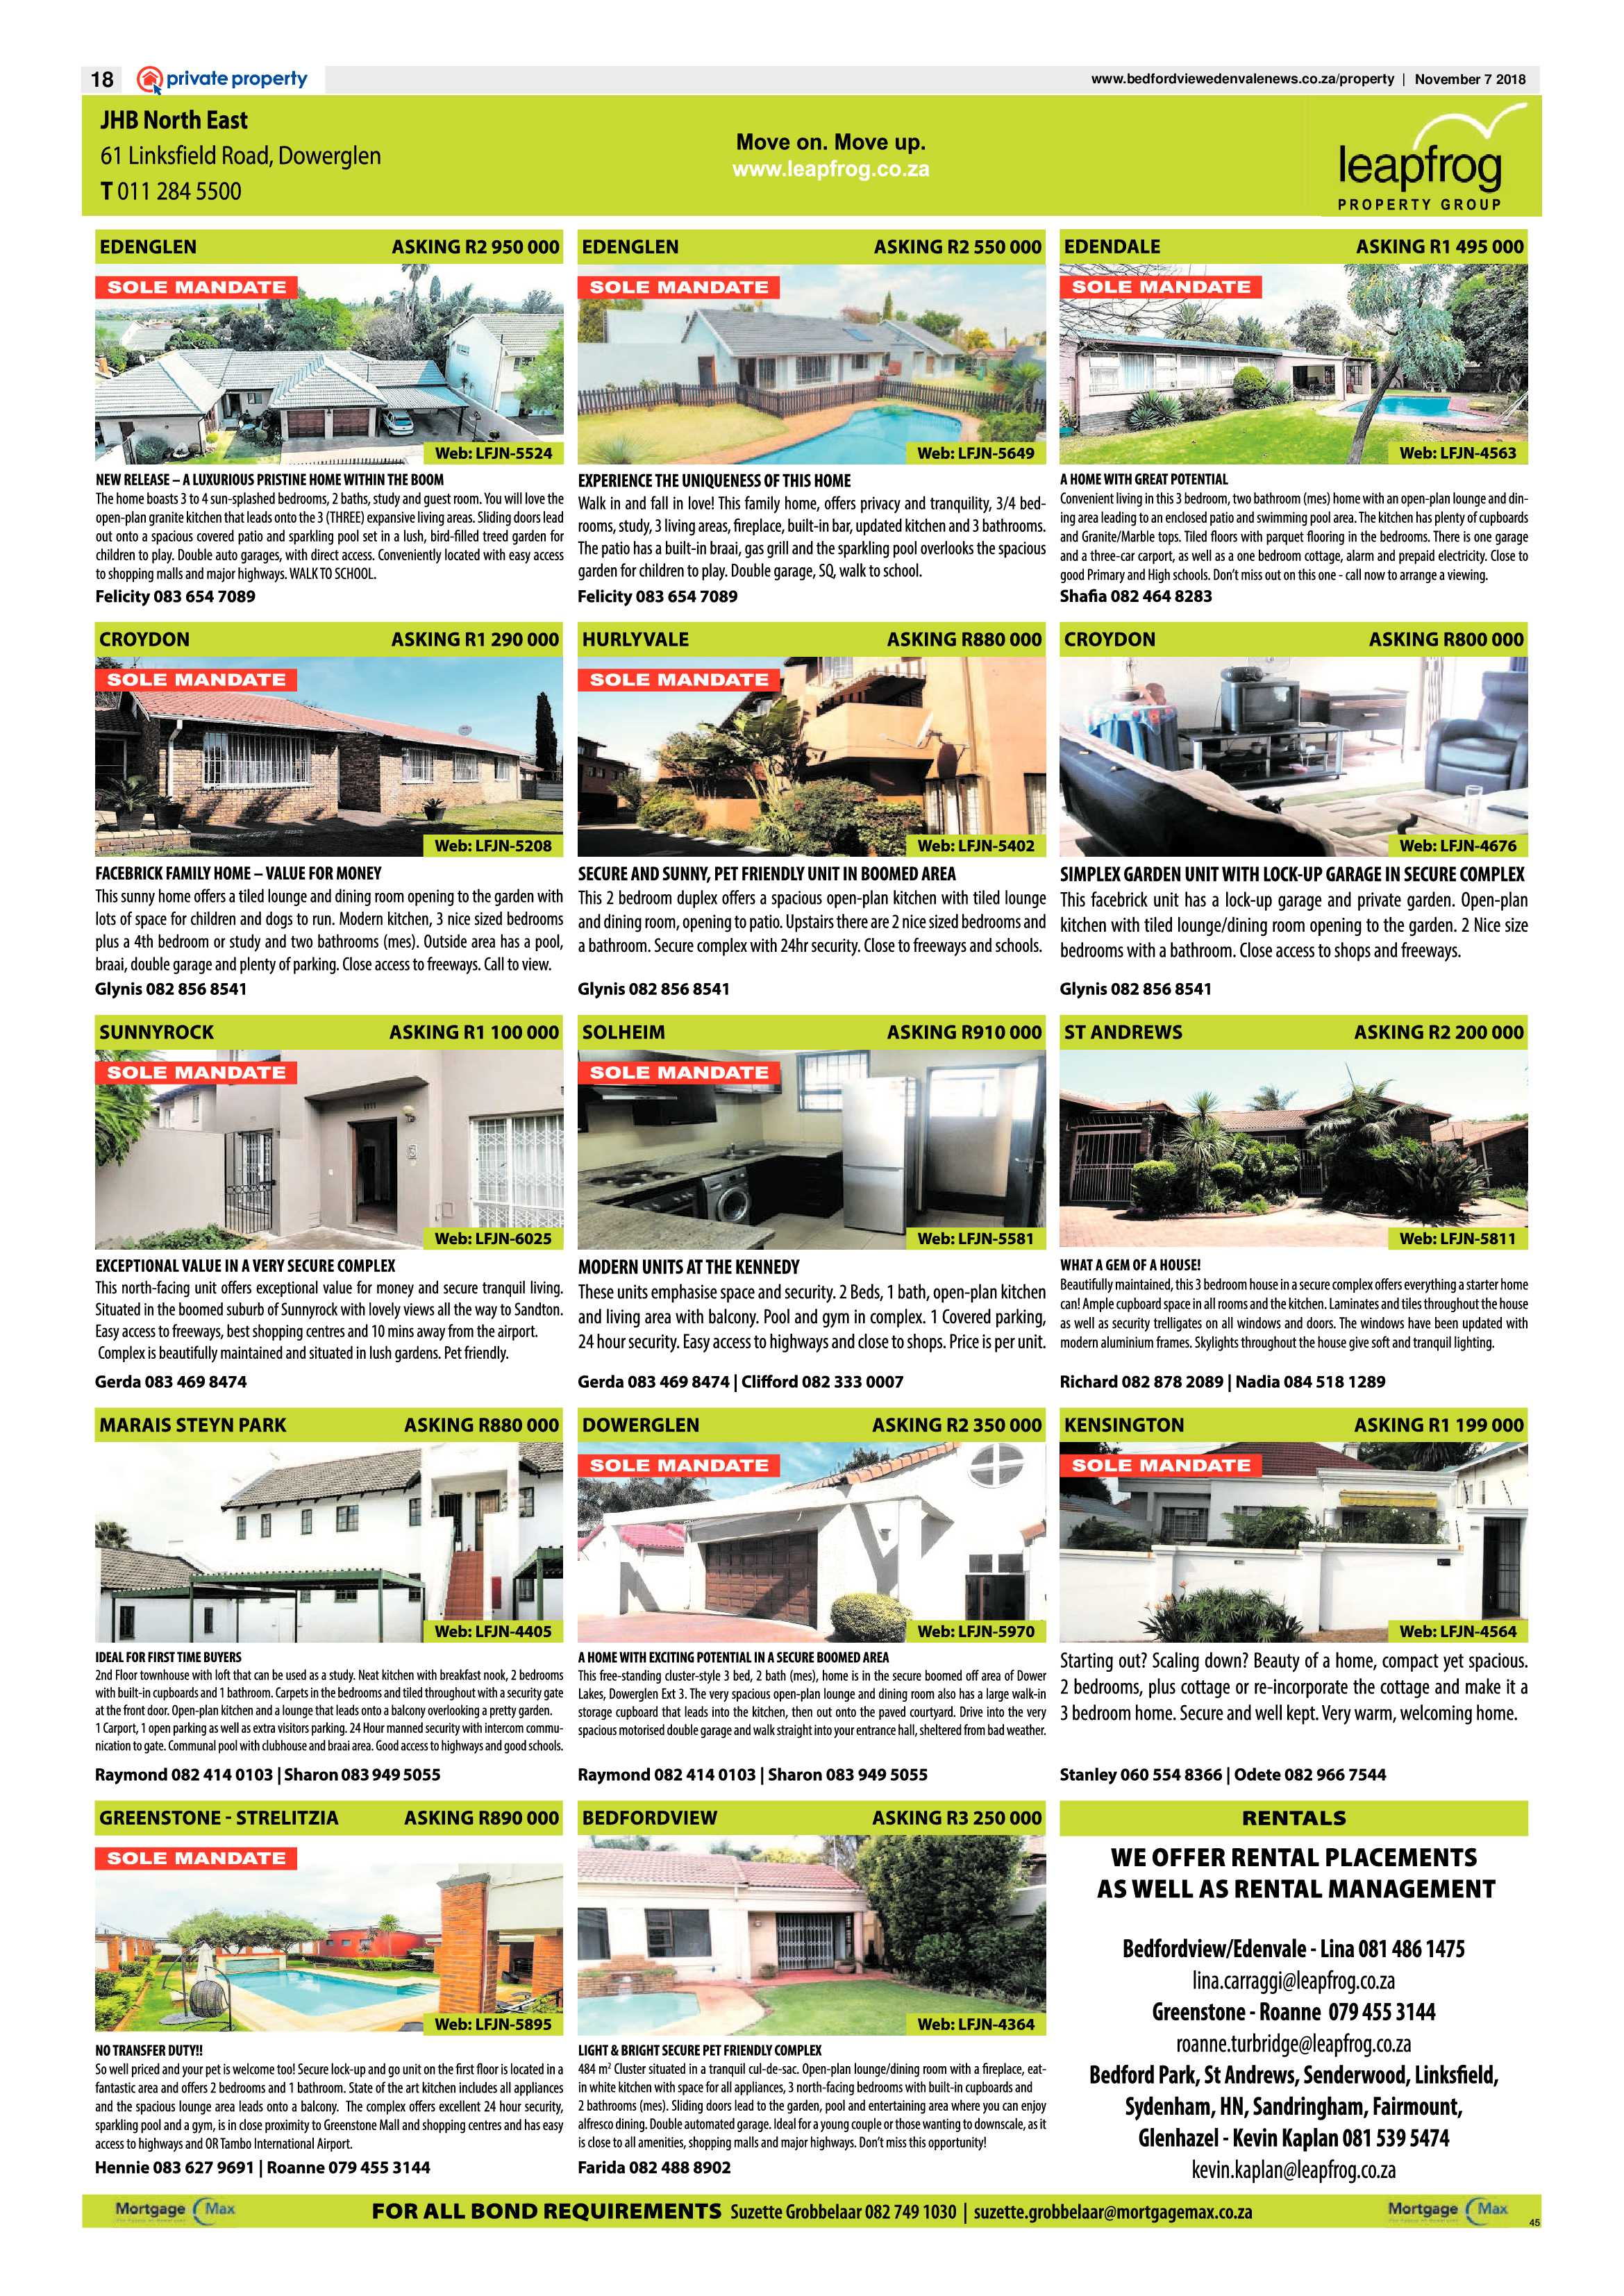 bedfordview-edenvale-news-07-november-2018-epapers-page-18